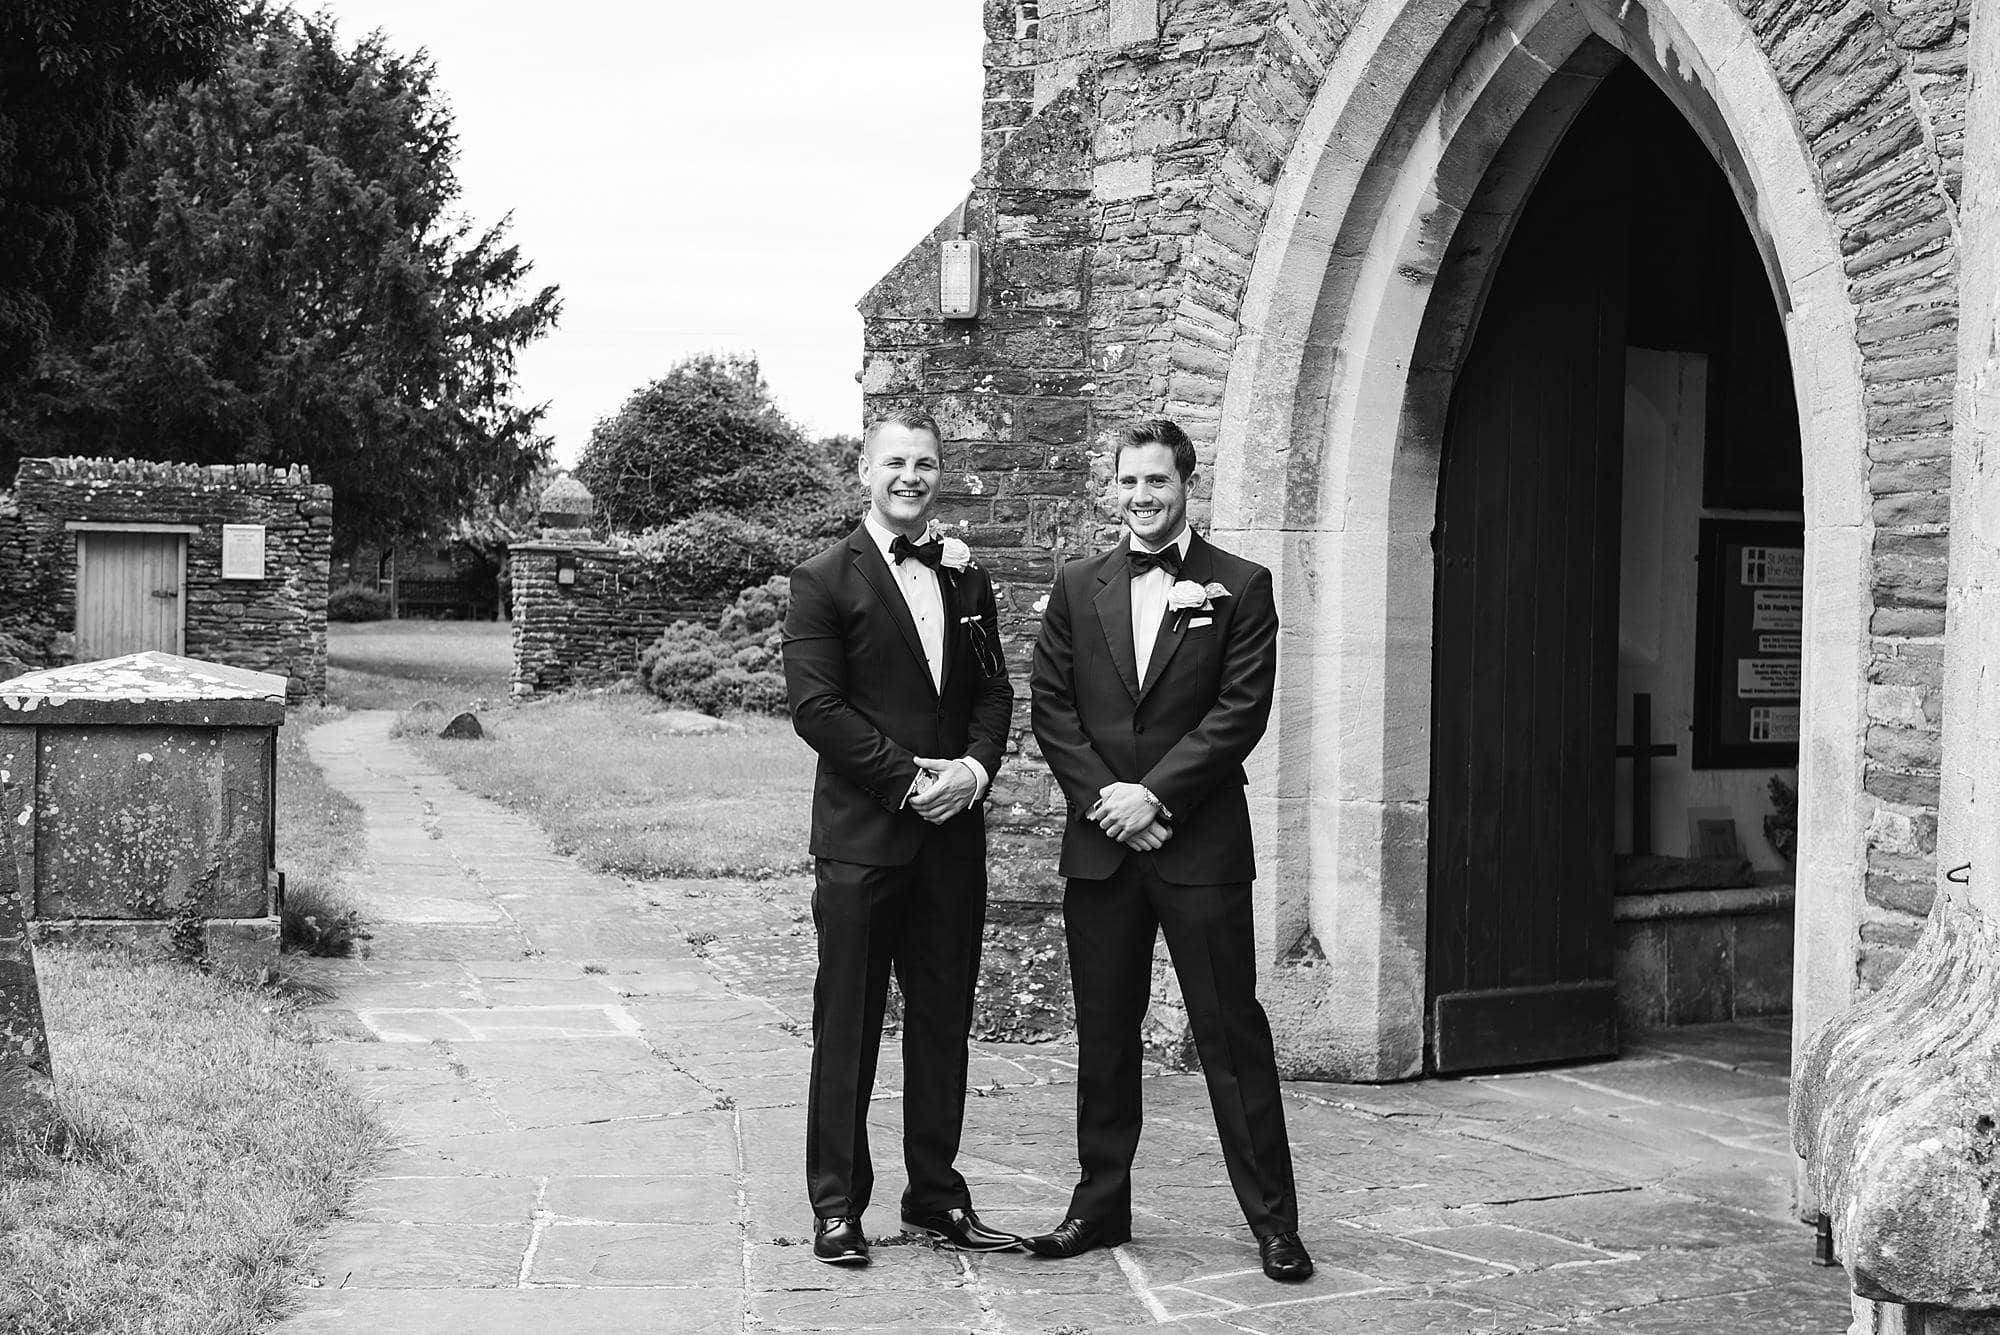 Groom and best man stood outside church